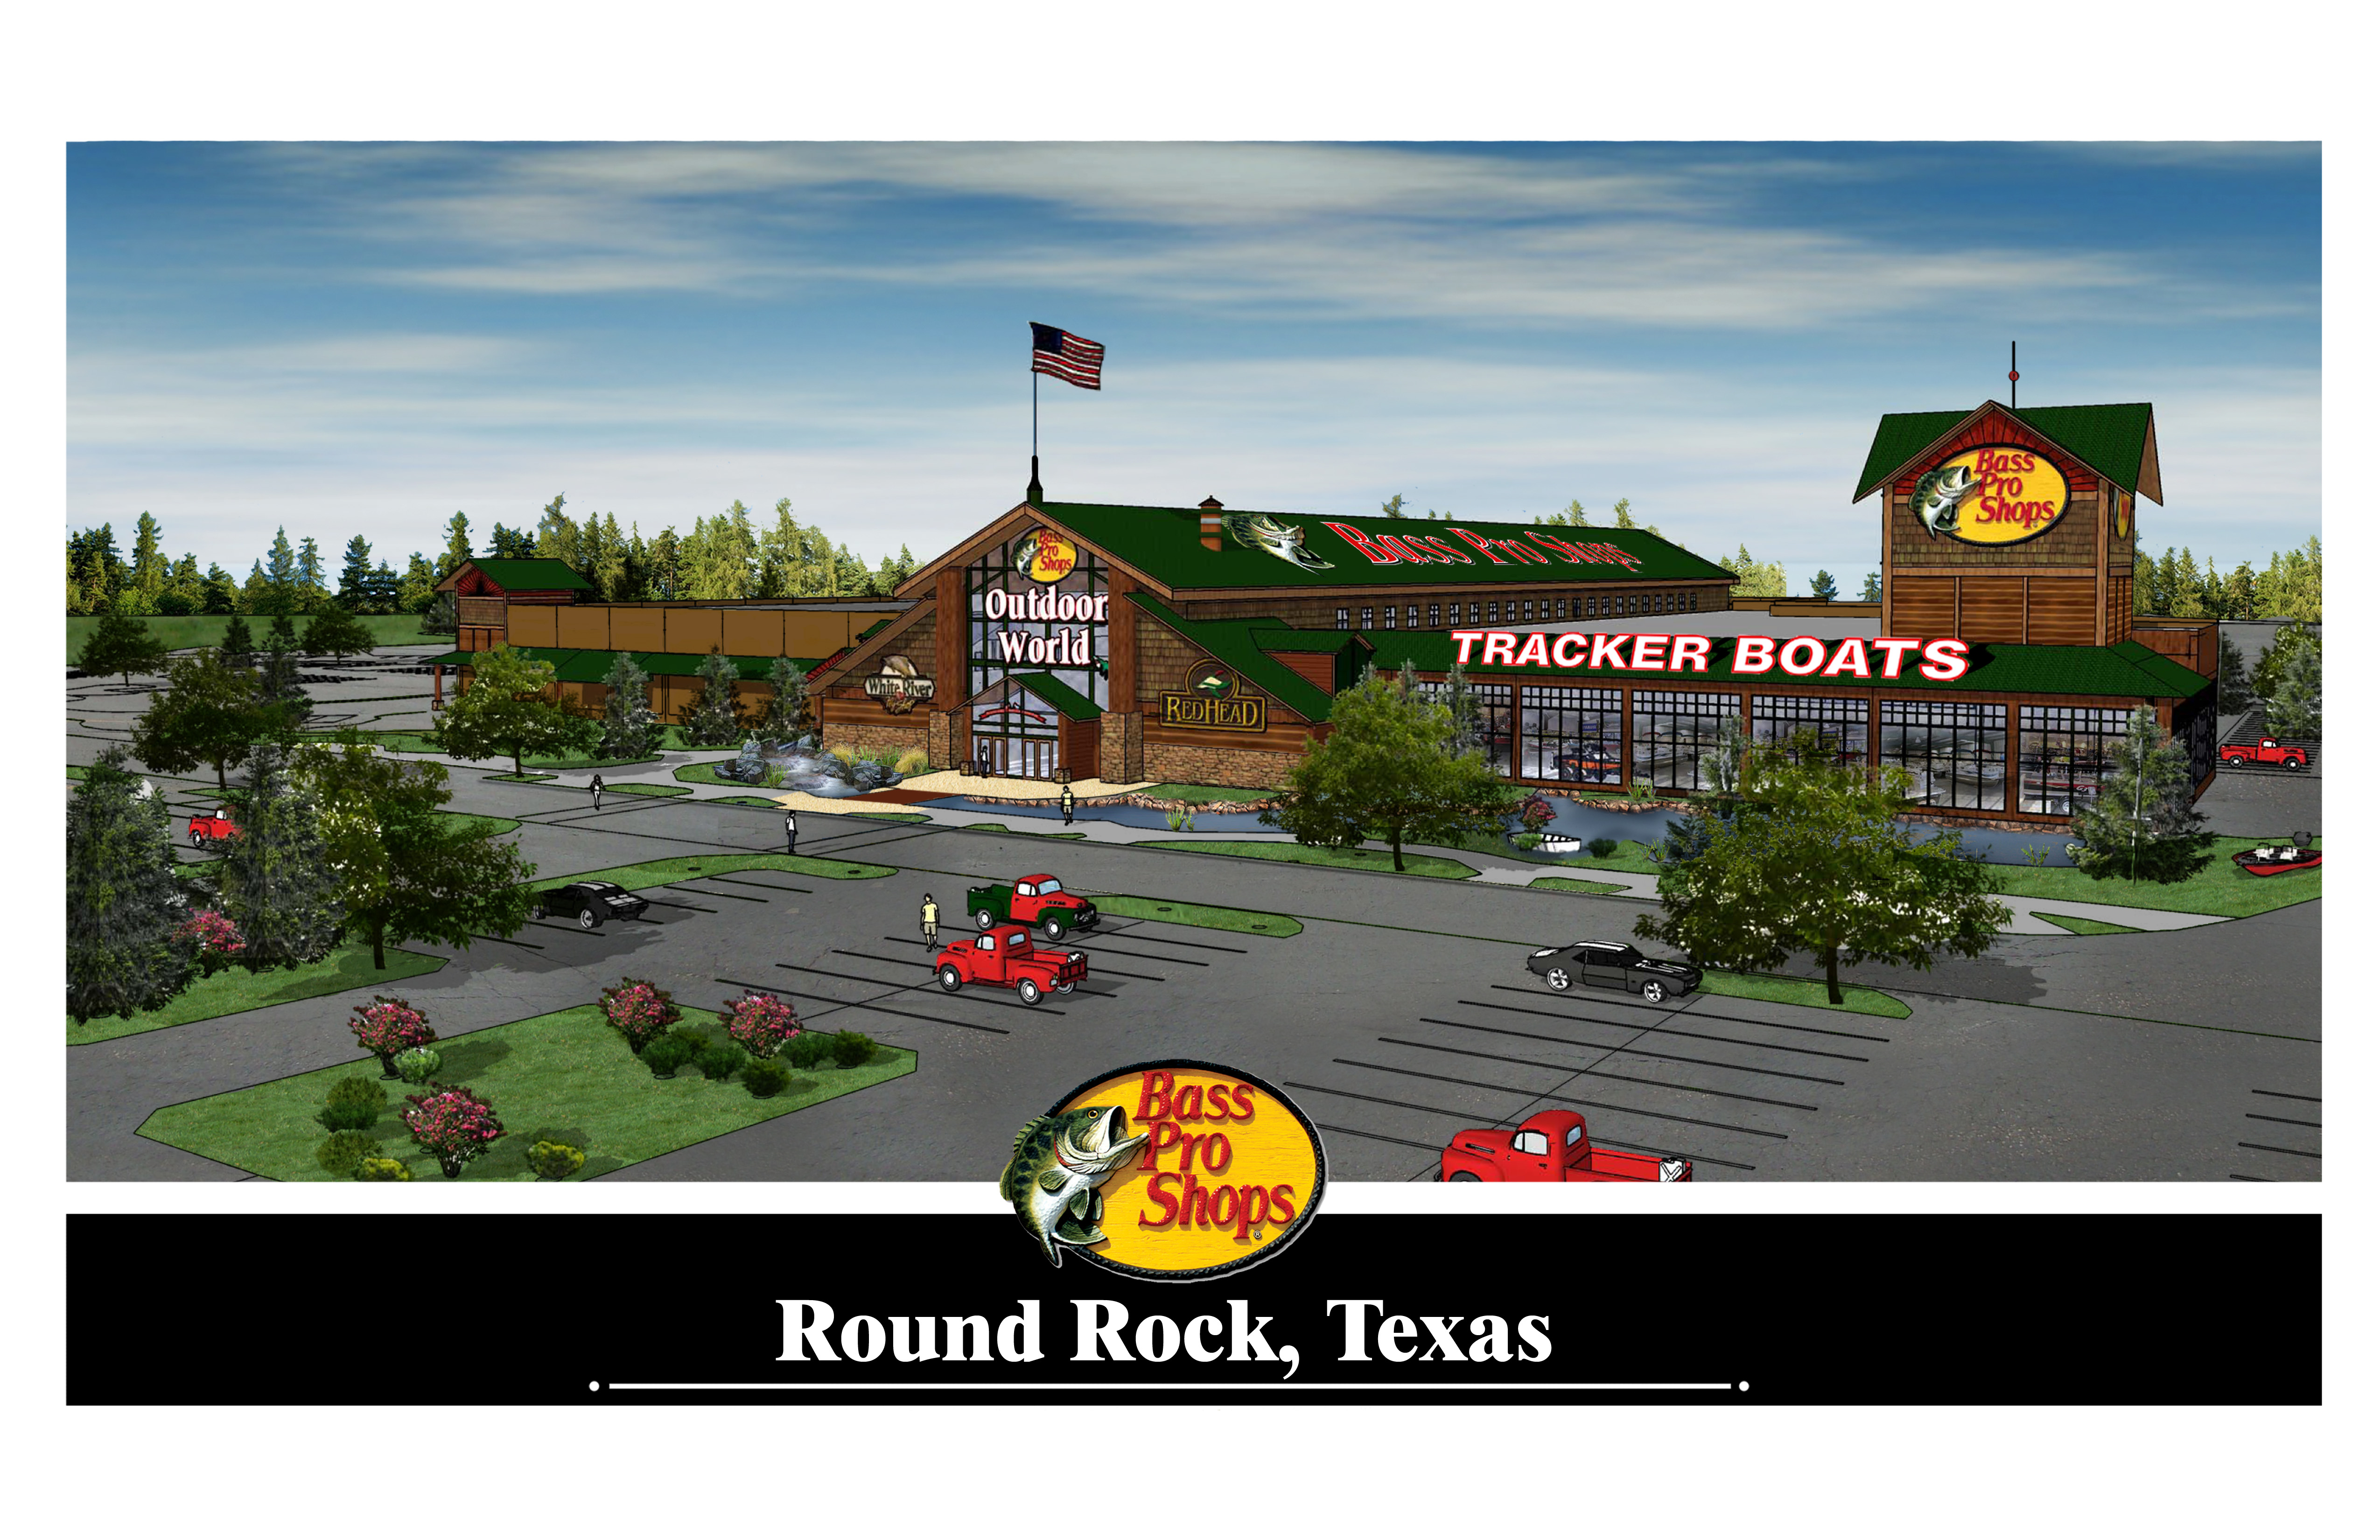 bass pro shops news releases bass pro shops to open outdoor world store in round rock texas. Black Bedroom Furniture Sets. Home Design Ideas